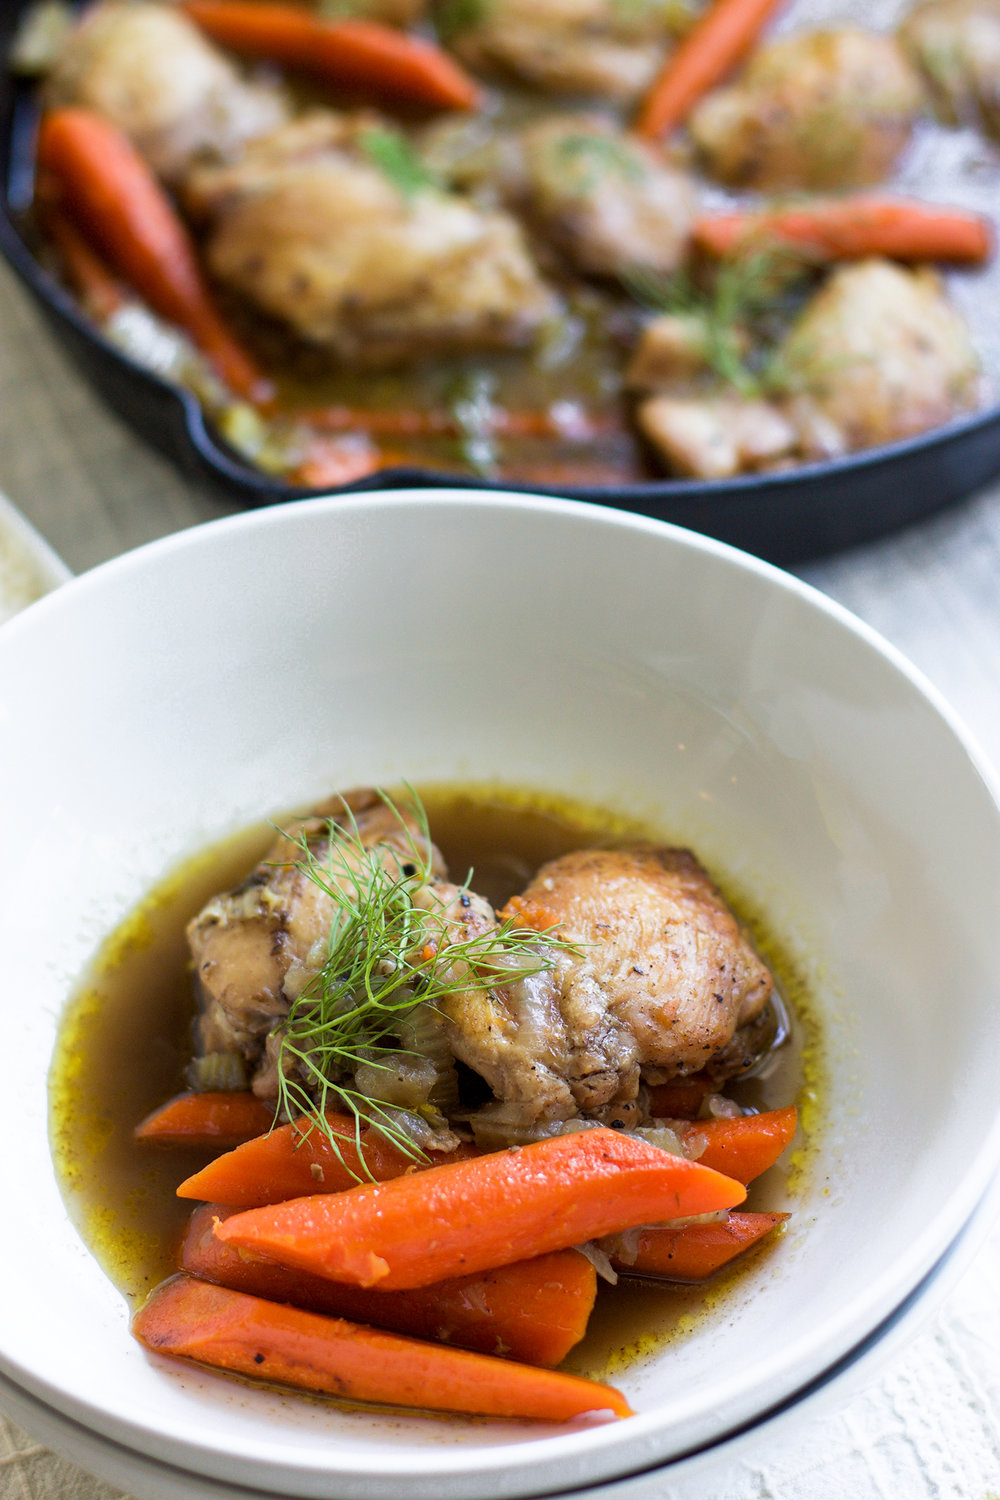 Spiced Citrus Fennel Braised Chicken Thighs and Carrots: My Diary of Us